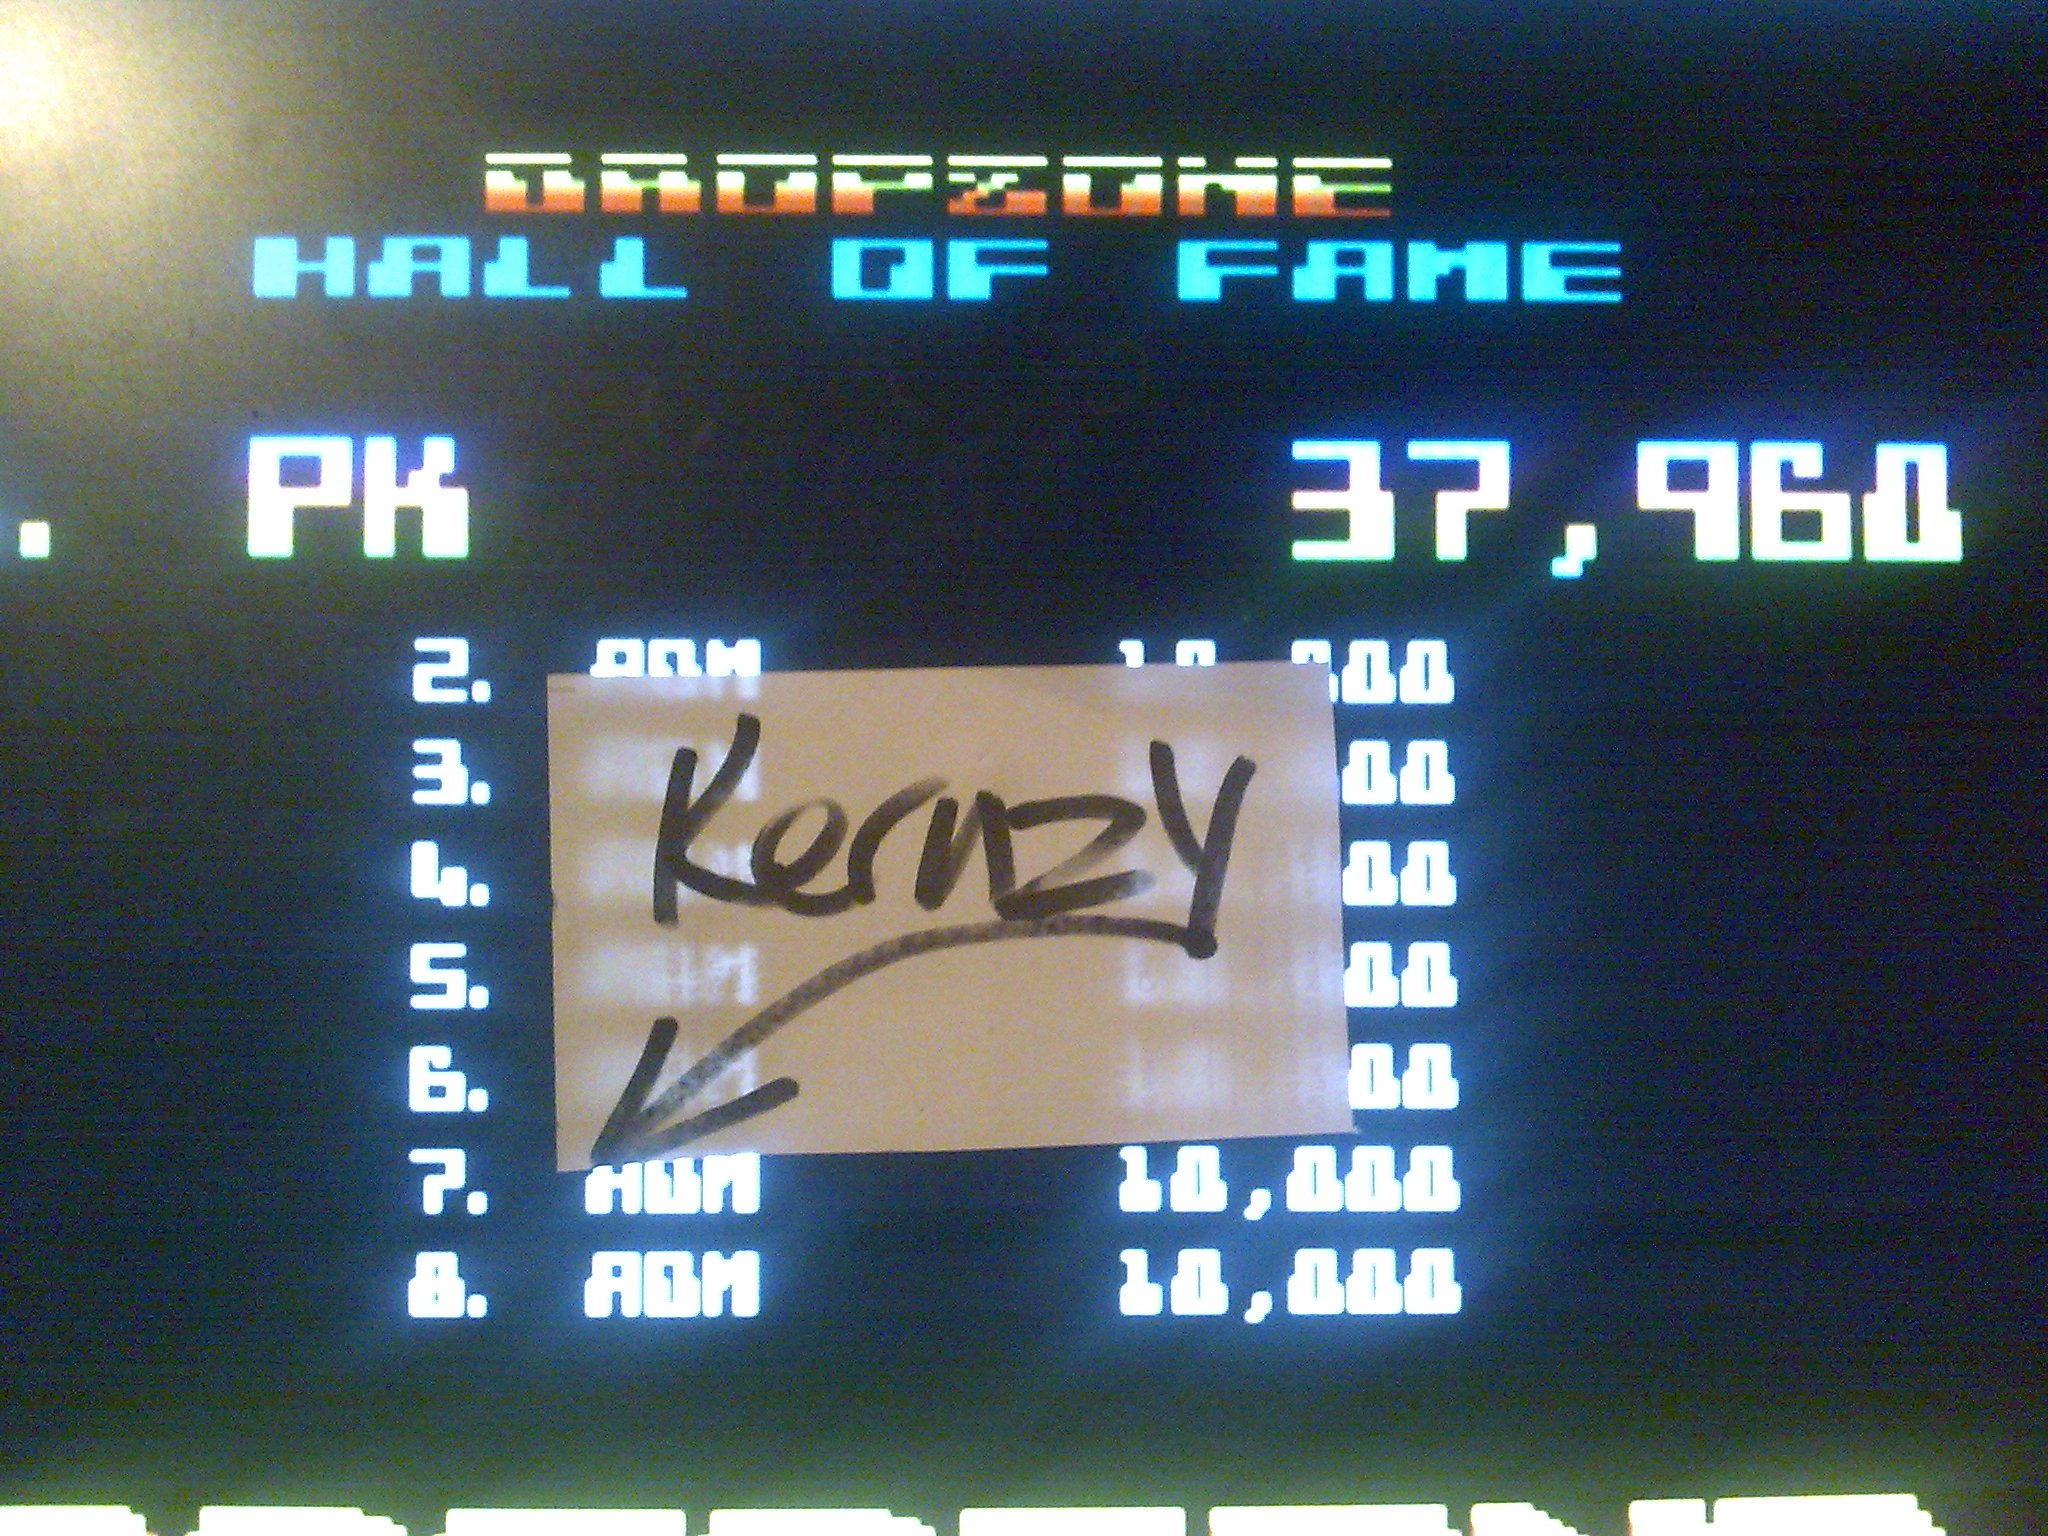 kernzy: Dropzone (Atari 400/800/XL/XE Emulated) 37,960 points on 2014-10-13 21:13:59